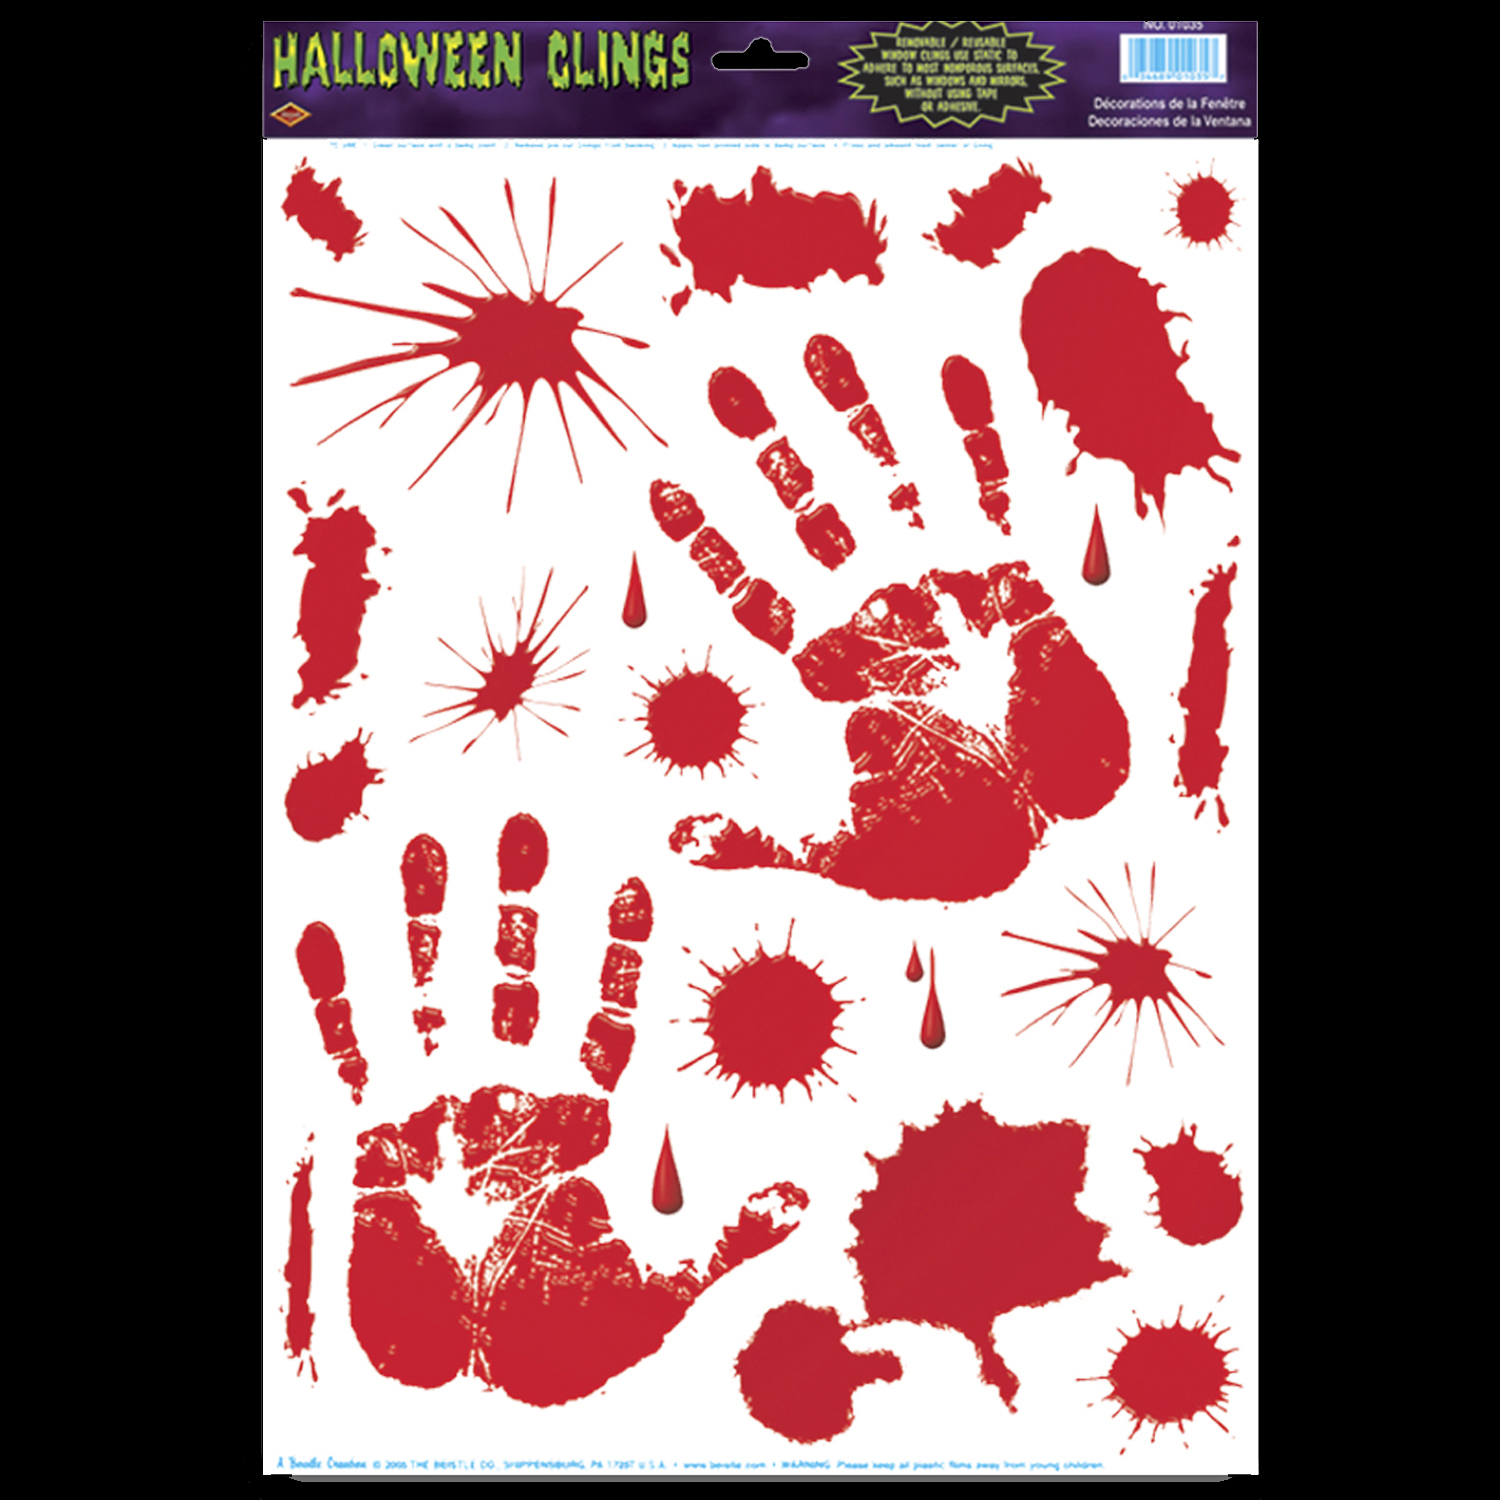 1-PAIR-Realistic LIFE SIZE BLOODY GEL HAND PRINT-Cling Sticker Horror Decoration